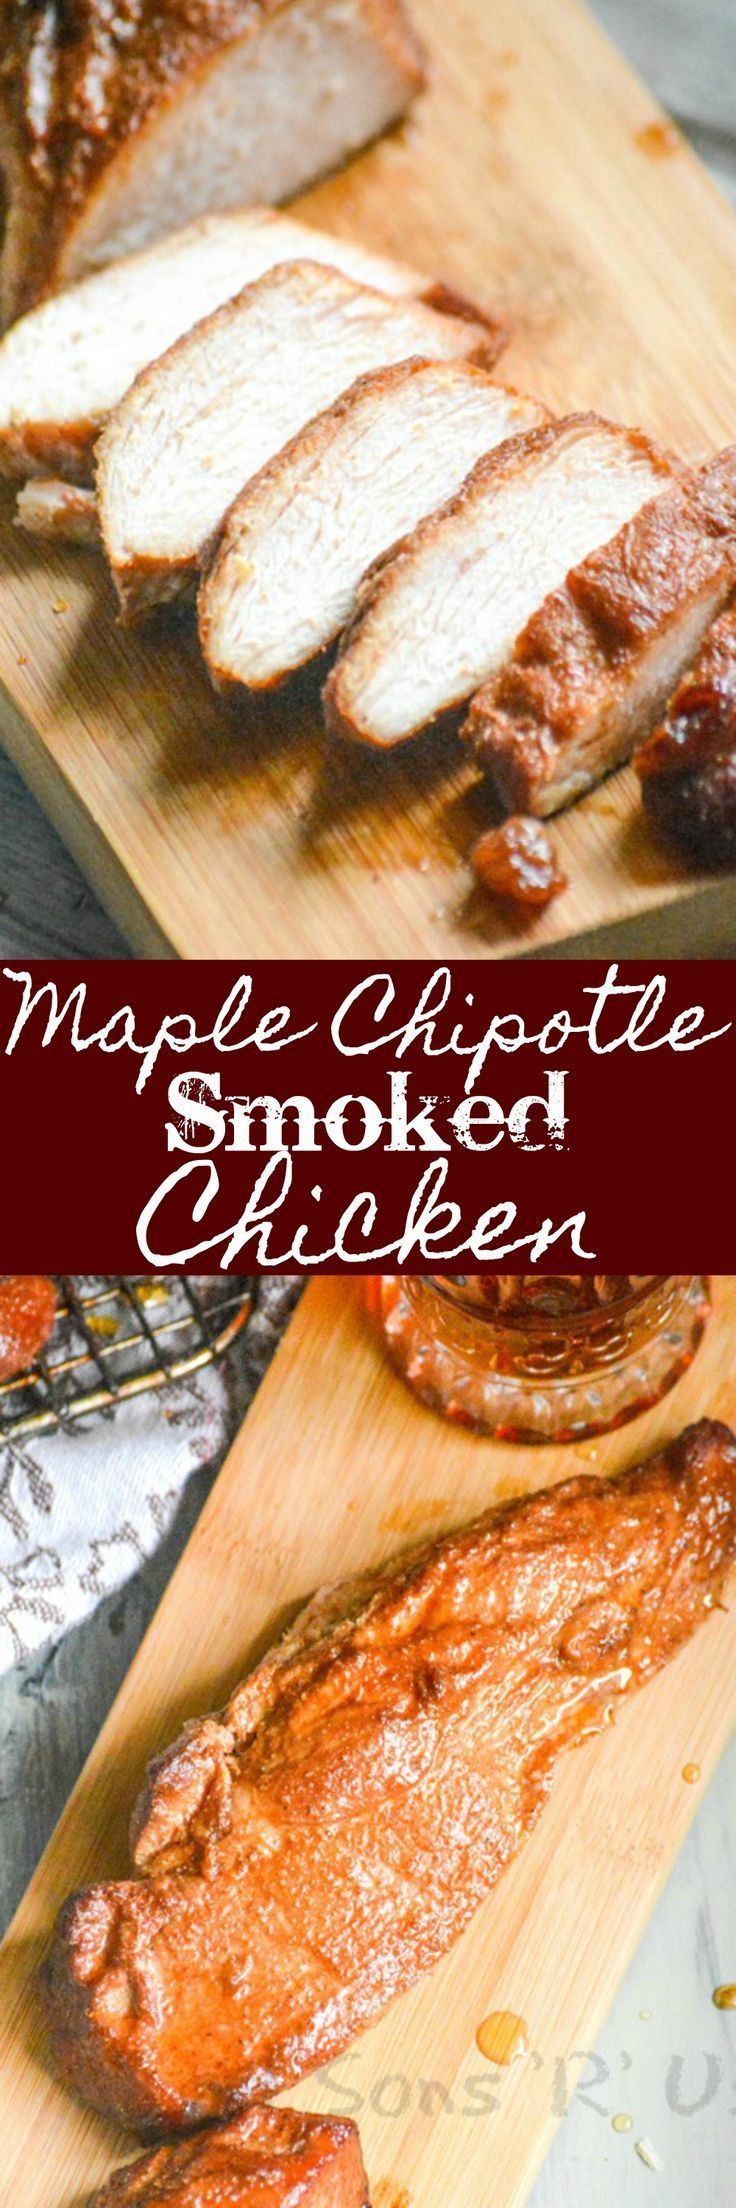 A sweet and slightly spicy maple chipotle glazed chicken breast is infused with wood smoke in every bite. This Maple Chipotle Smoked Chicken makes a tasty entree for any meal, and it even makes a mean Southwestern salad. Smoke up a batch for Dad for a special Father's Day treat.